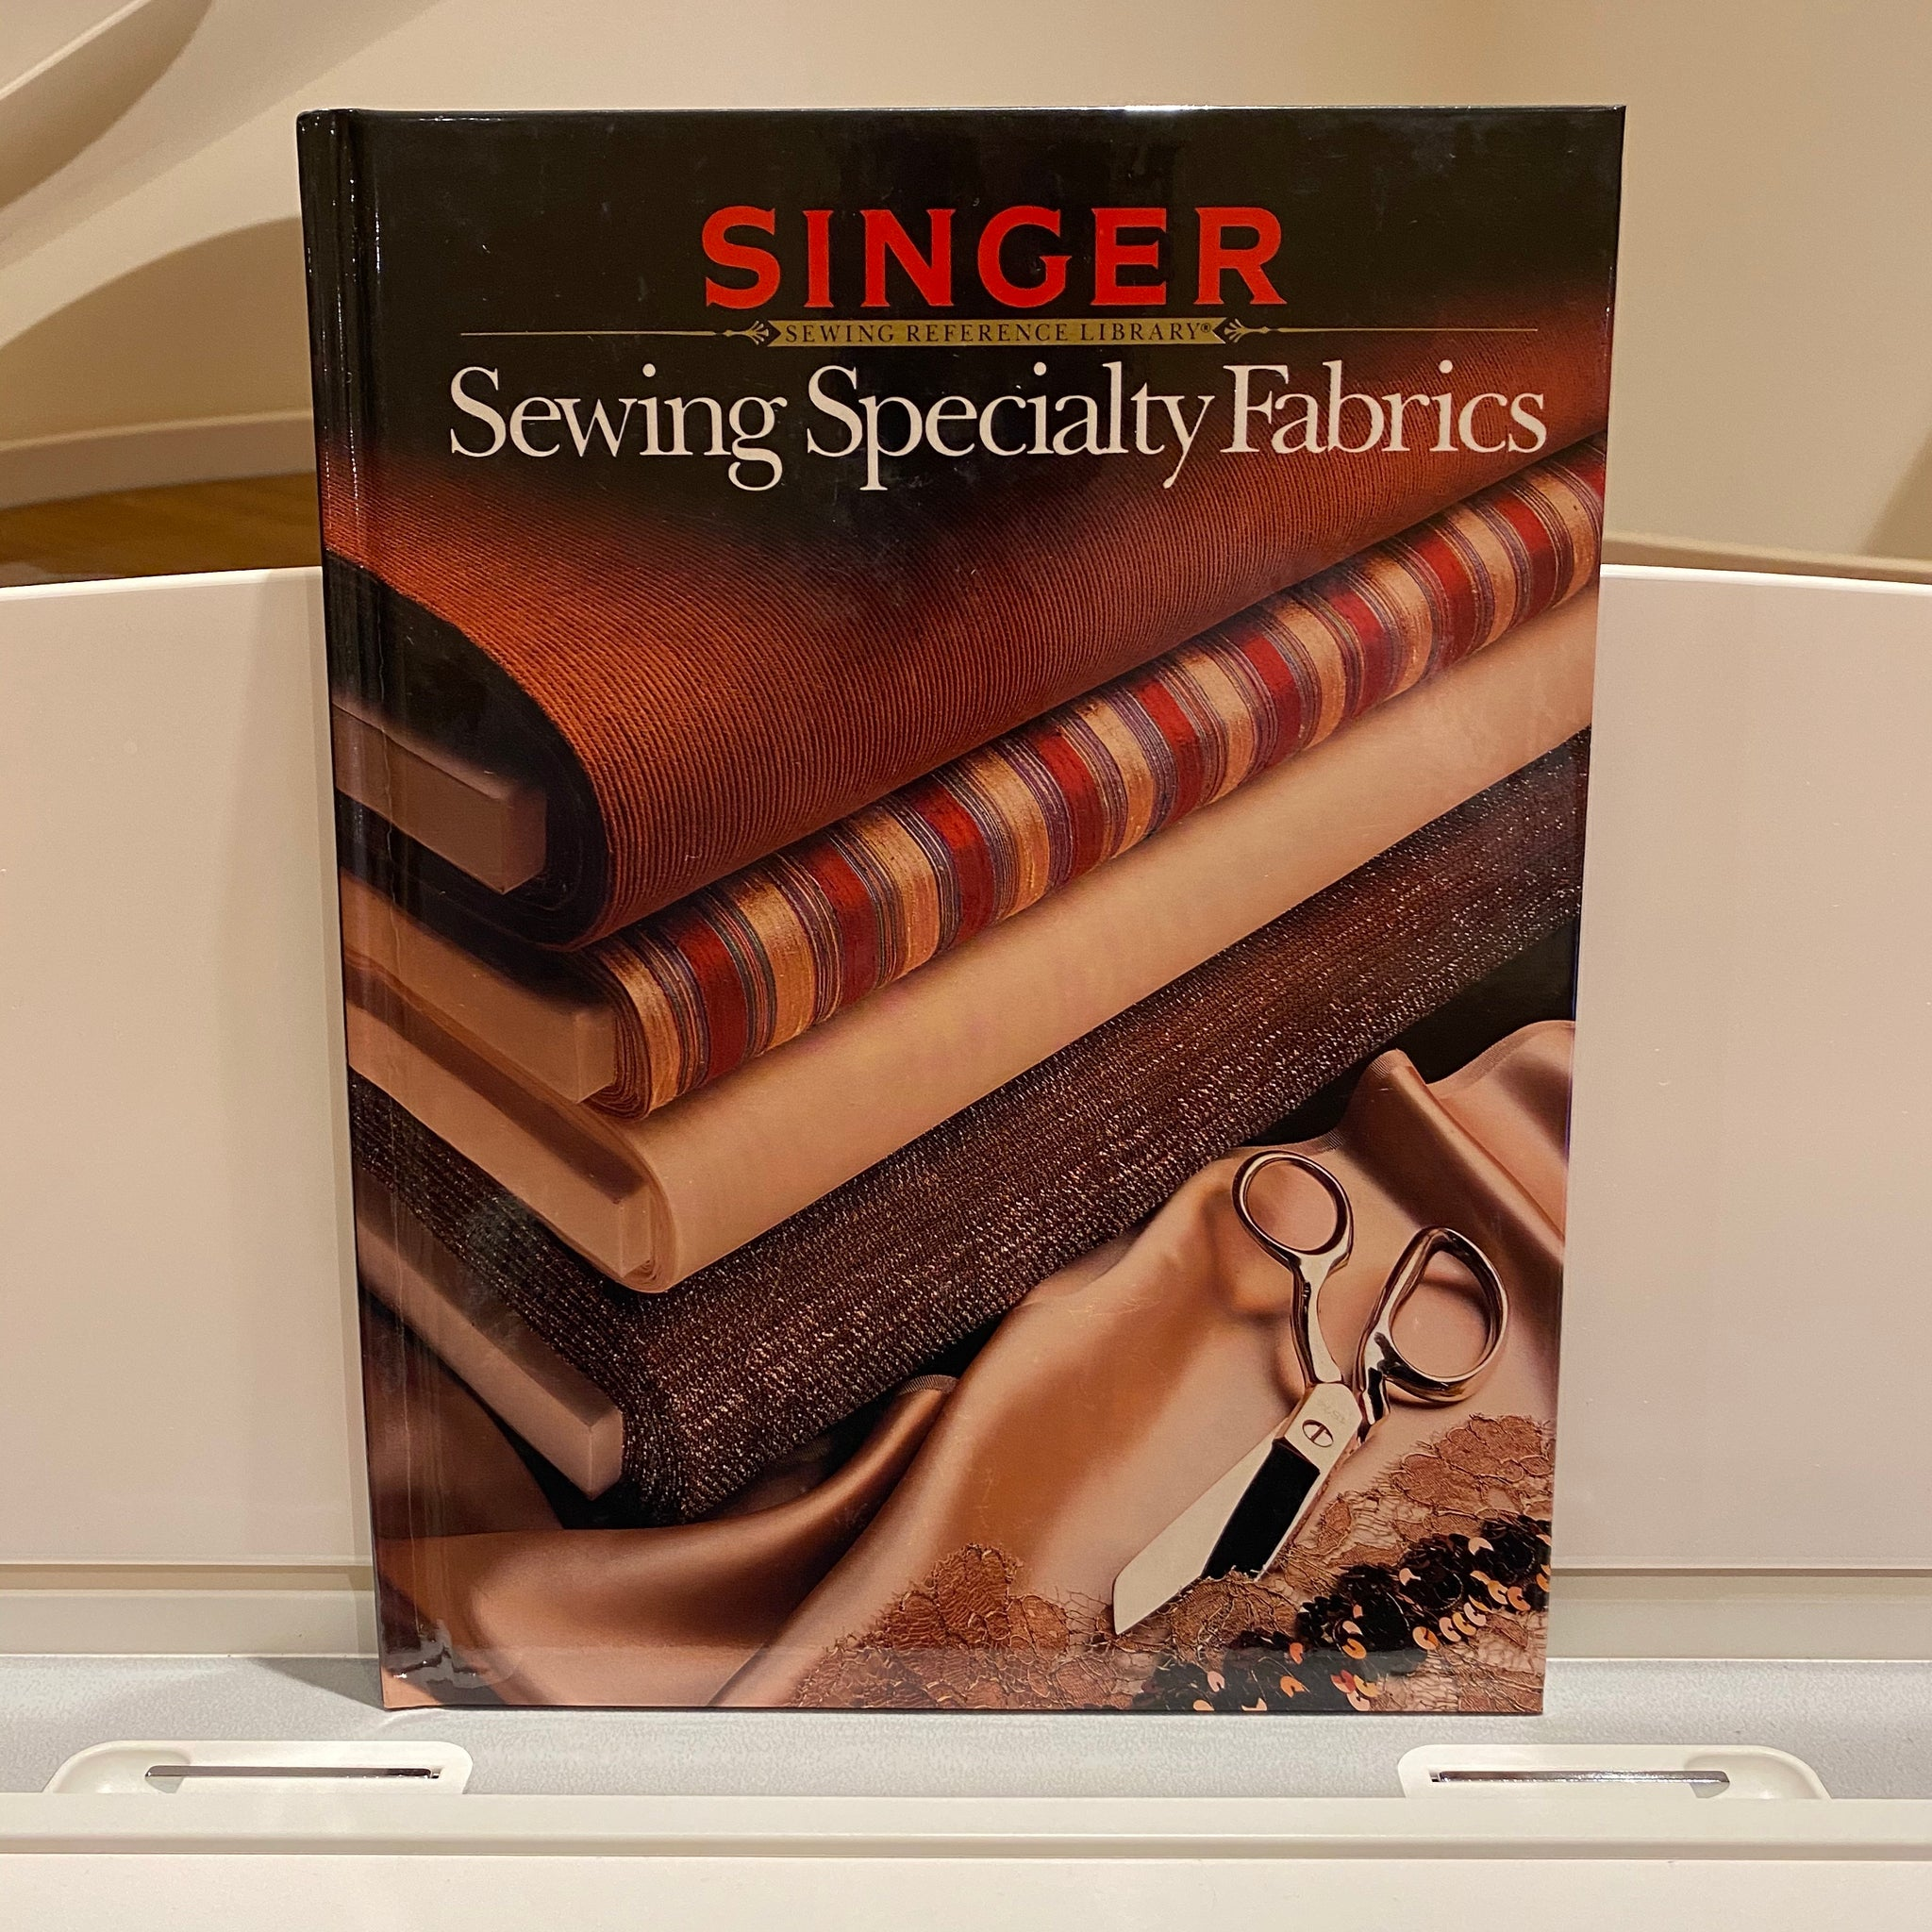 Singer Sewing Reference Library - Sewing Speciality Fabrics (hardback book)